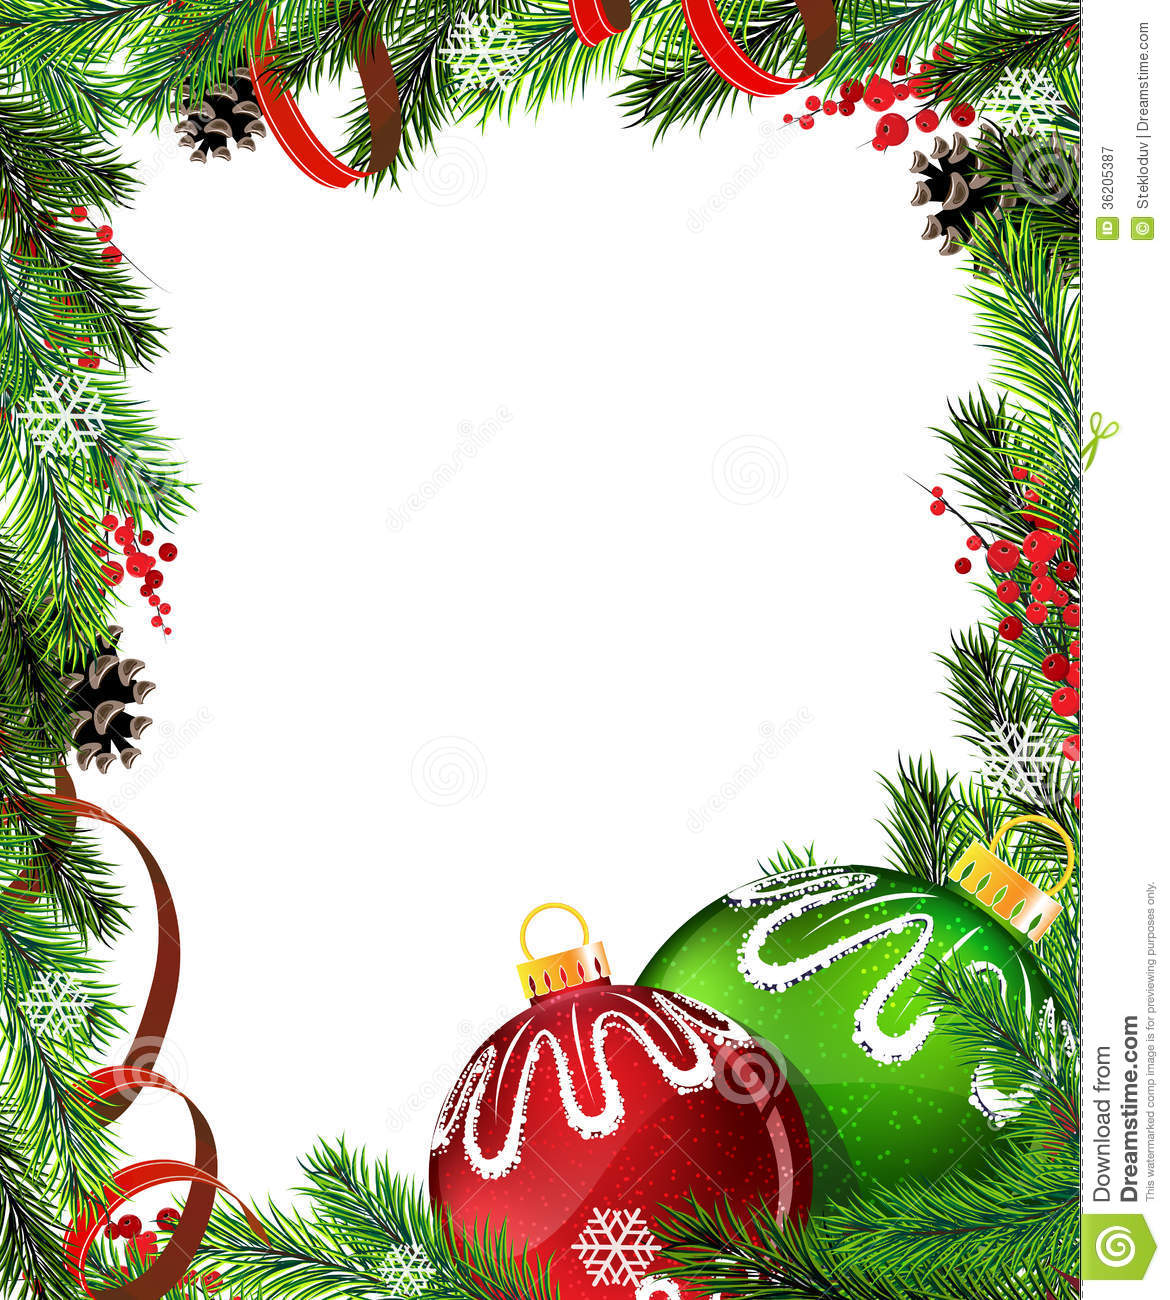 white christmas tree with red and green decorations